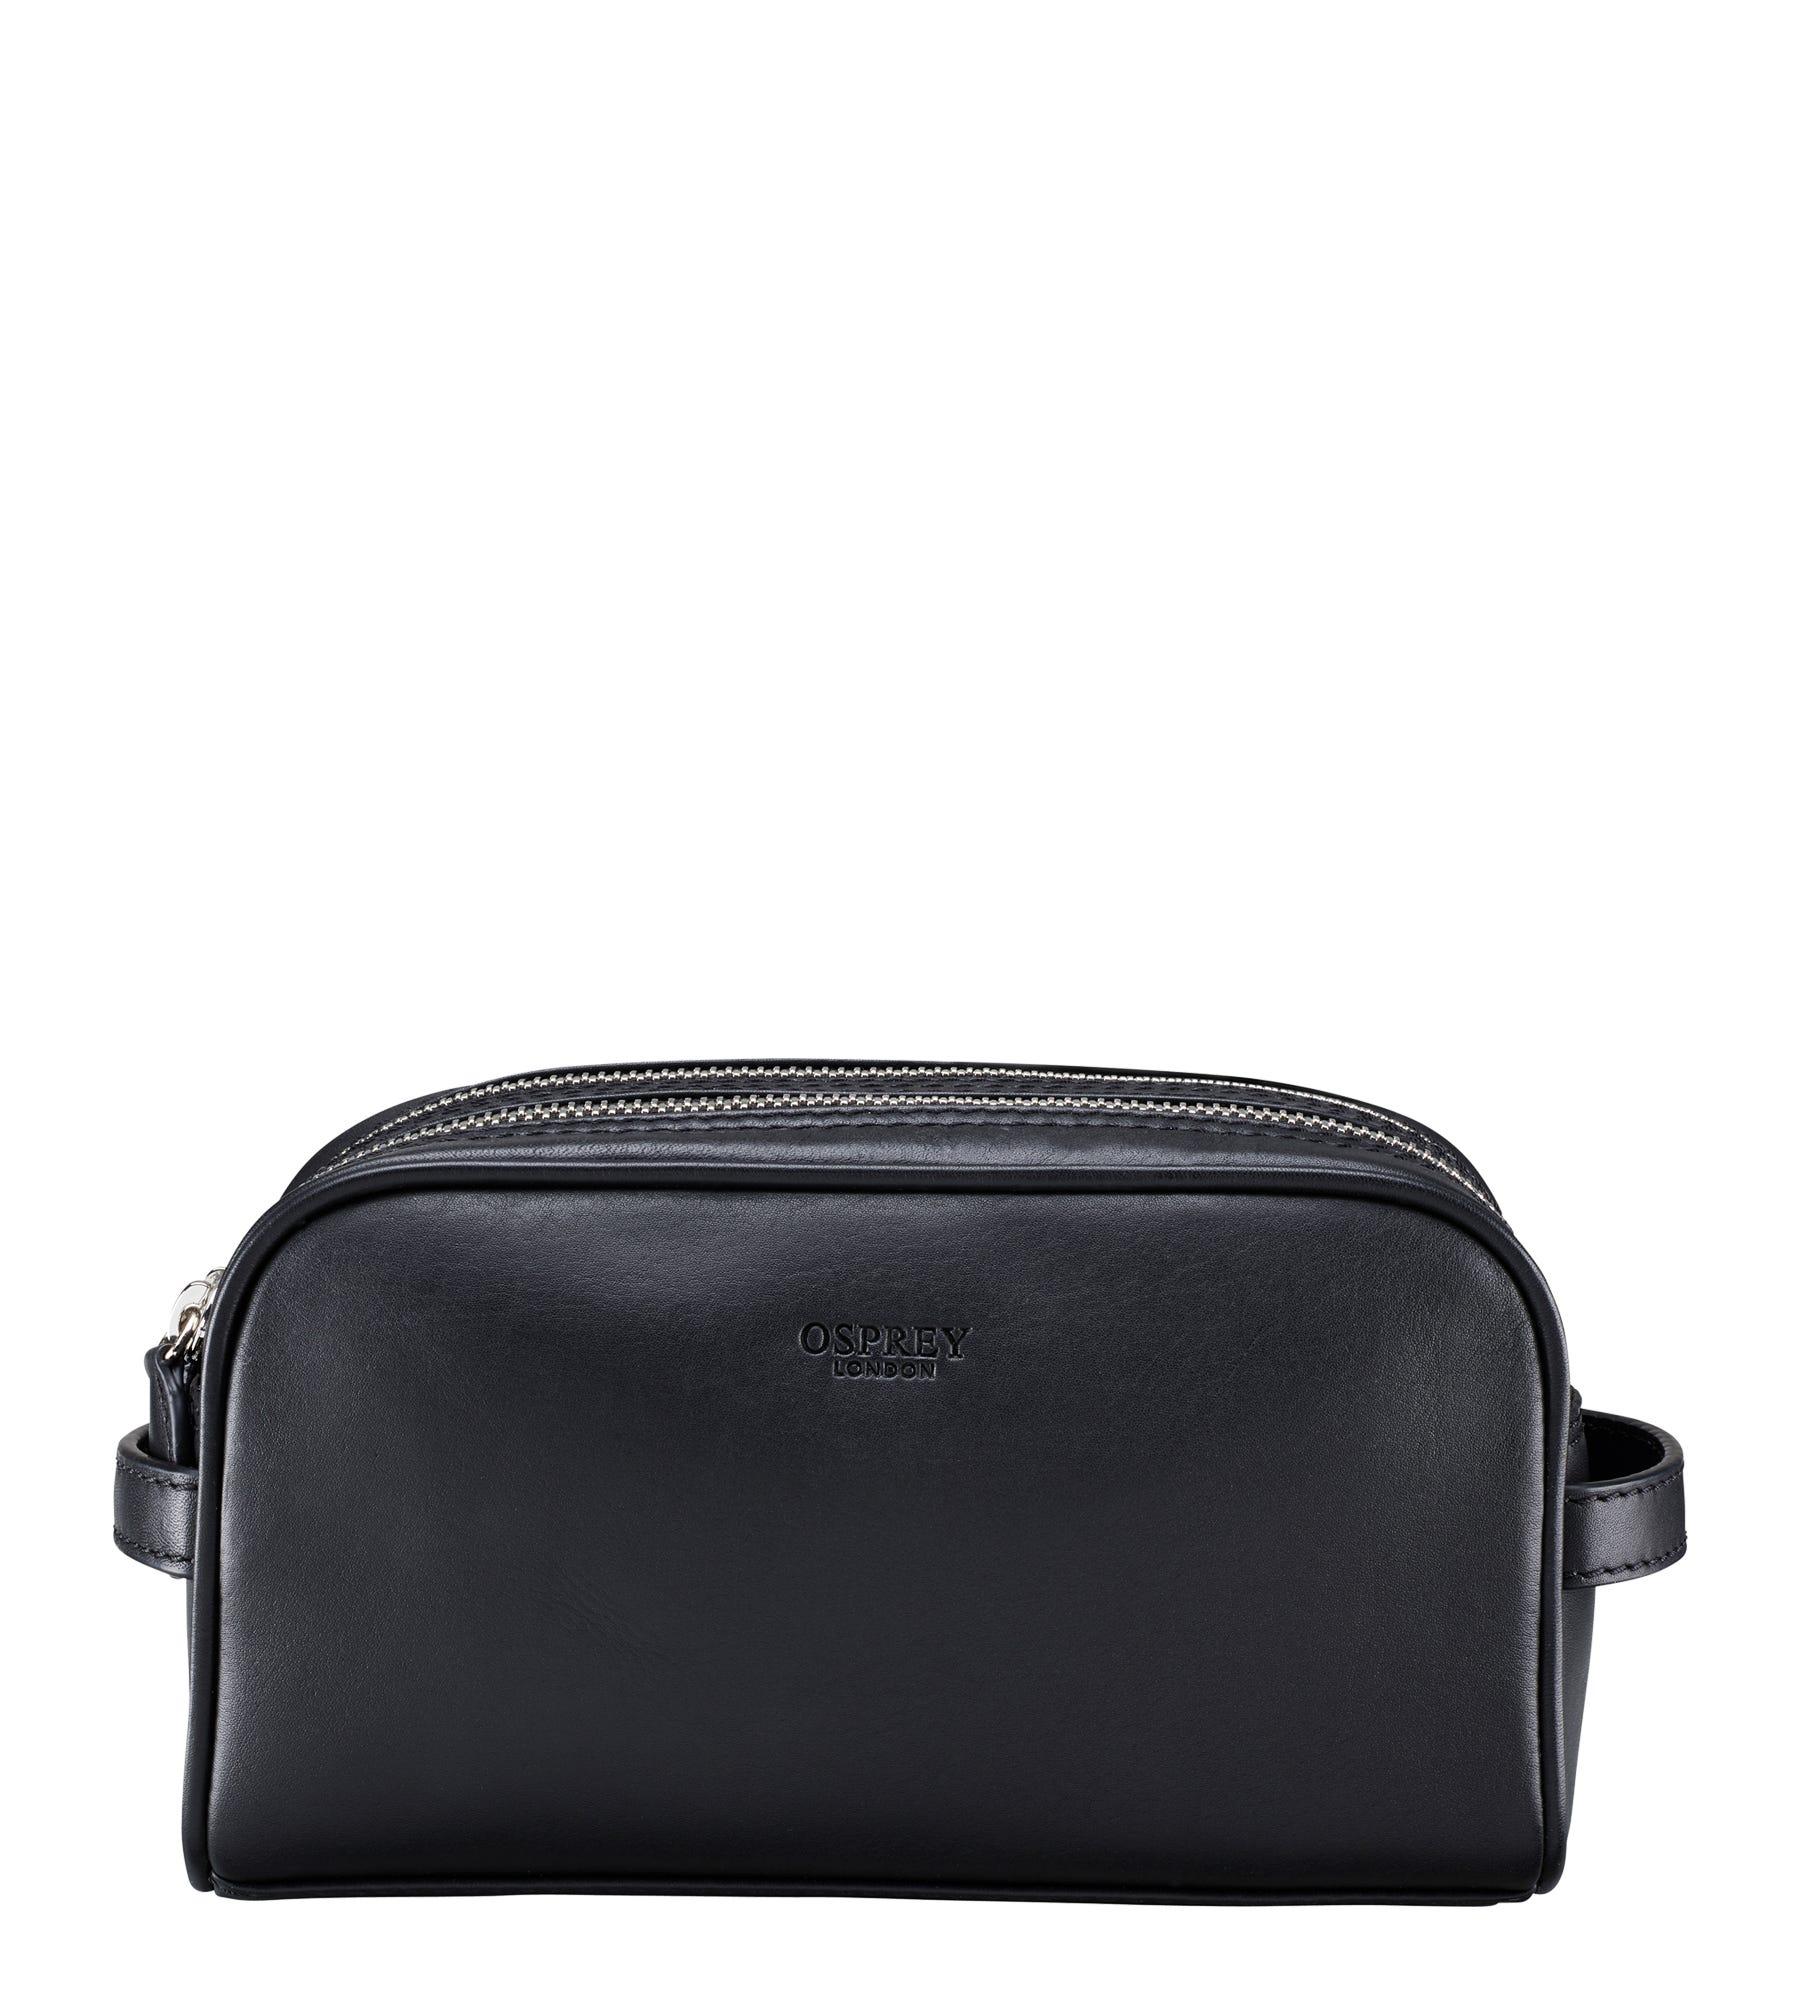 An image of The Pall Mall Leather Washbag